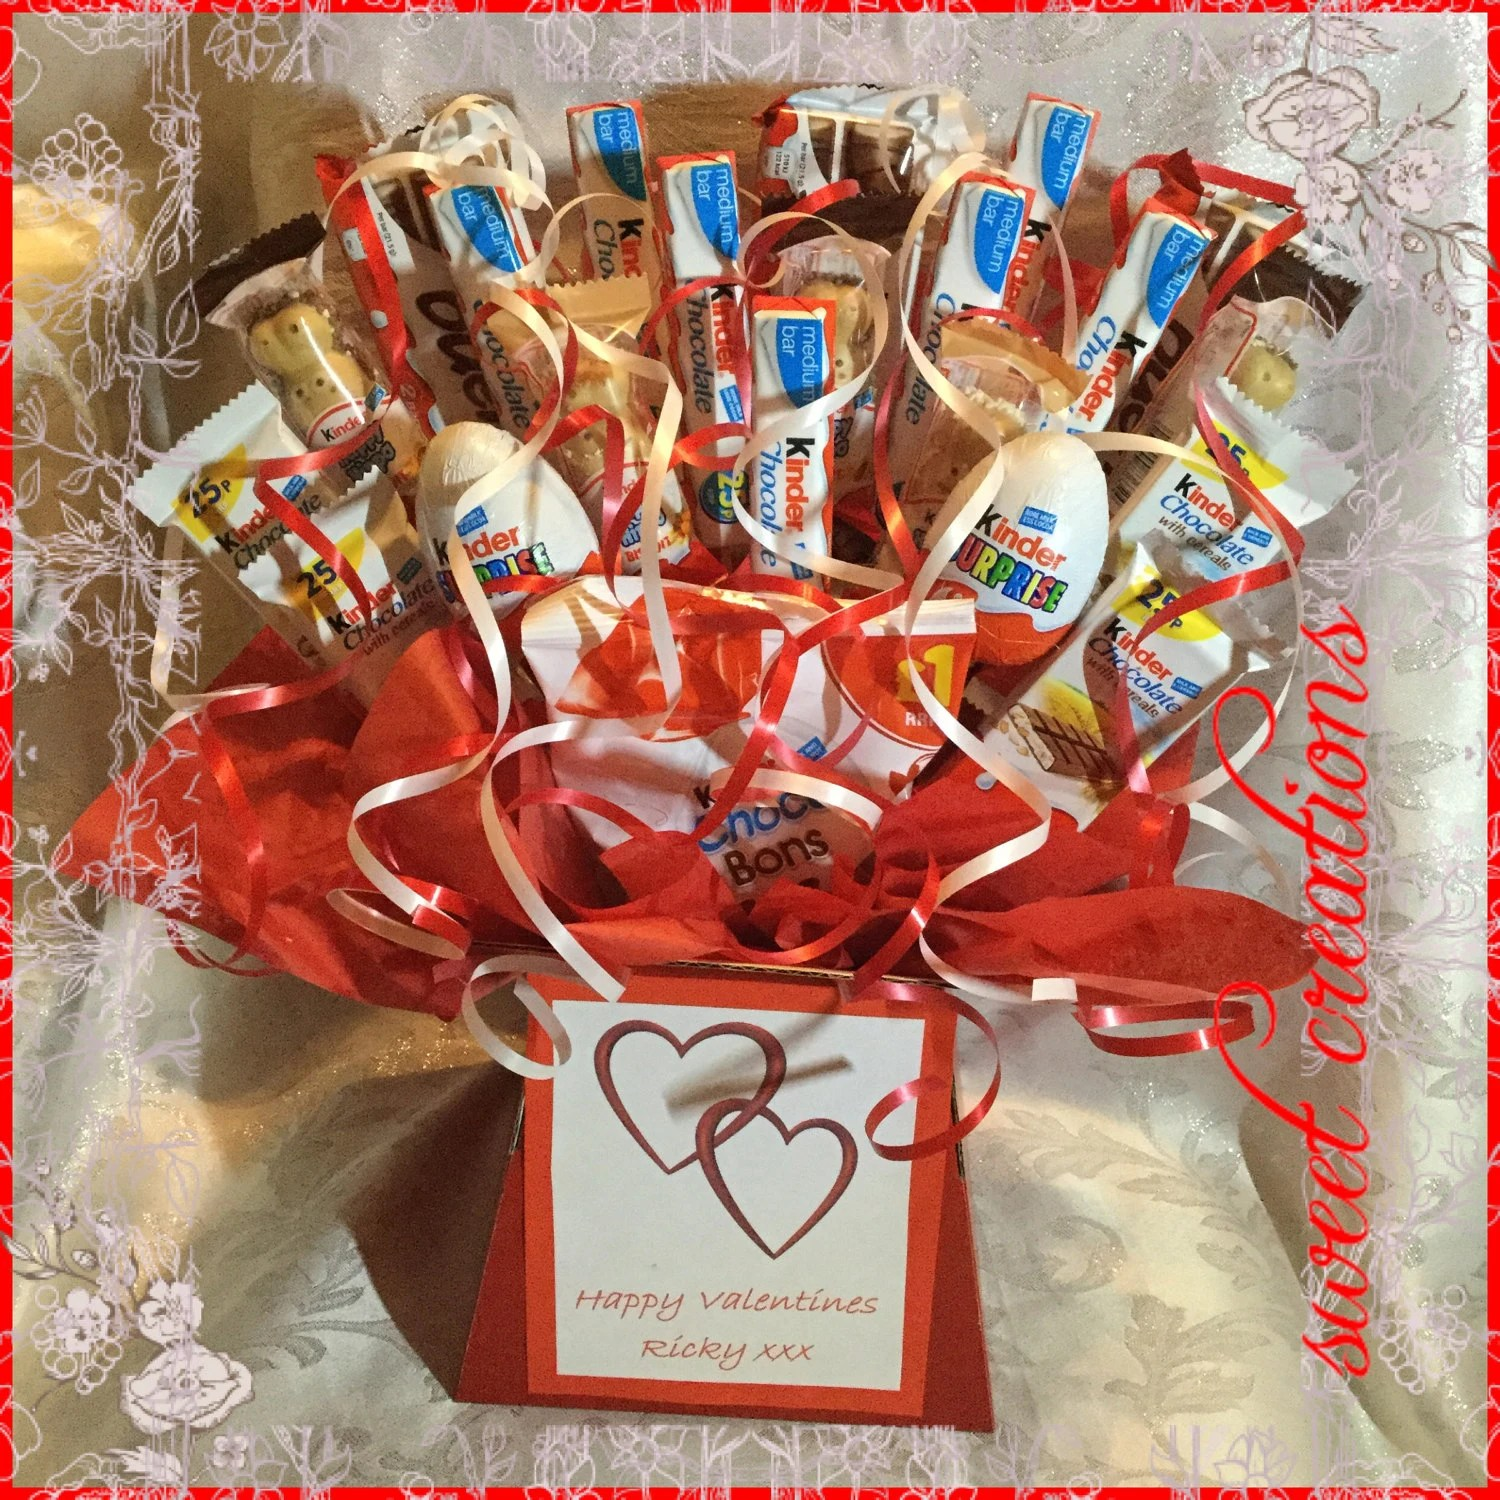 Kinderessen Party Kinder Chocolate Bouquet Sweet Creations Christmas Sweet Hamper Sweet Creations Birthday Gift Party Tablecentre Kinder Eggs Children S